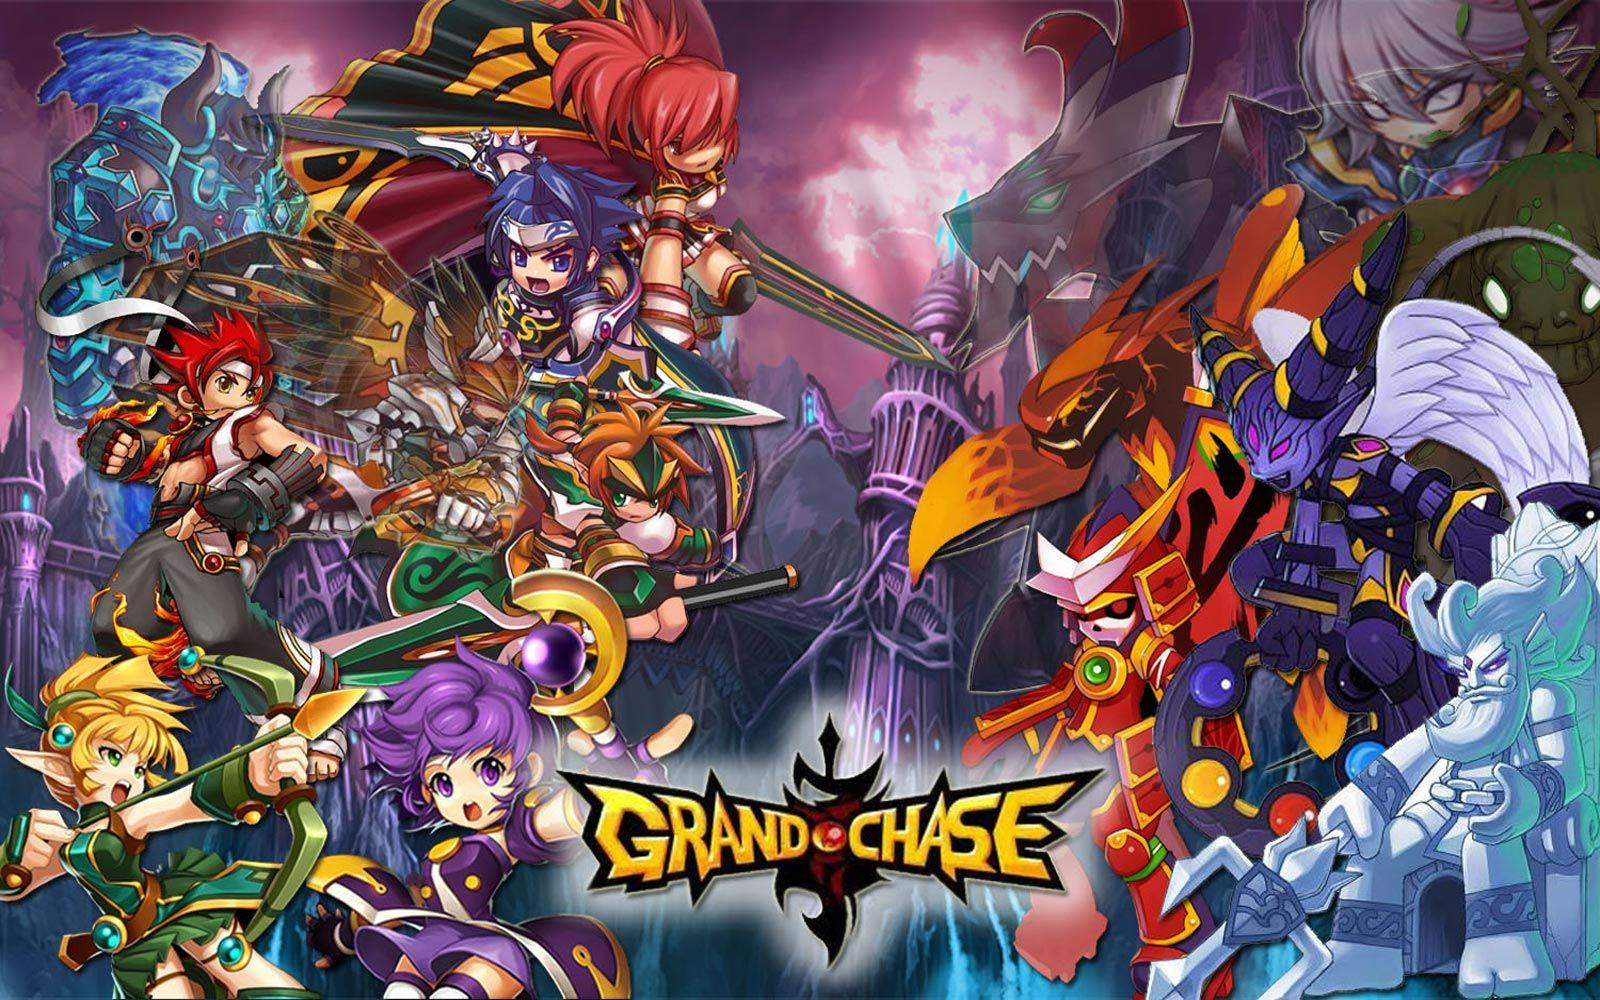 Grand Chase Wallpapers - Wallpaper Cave